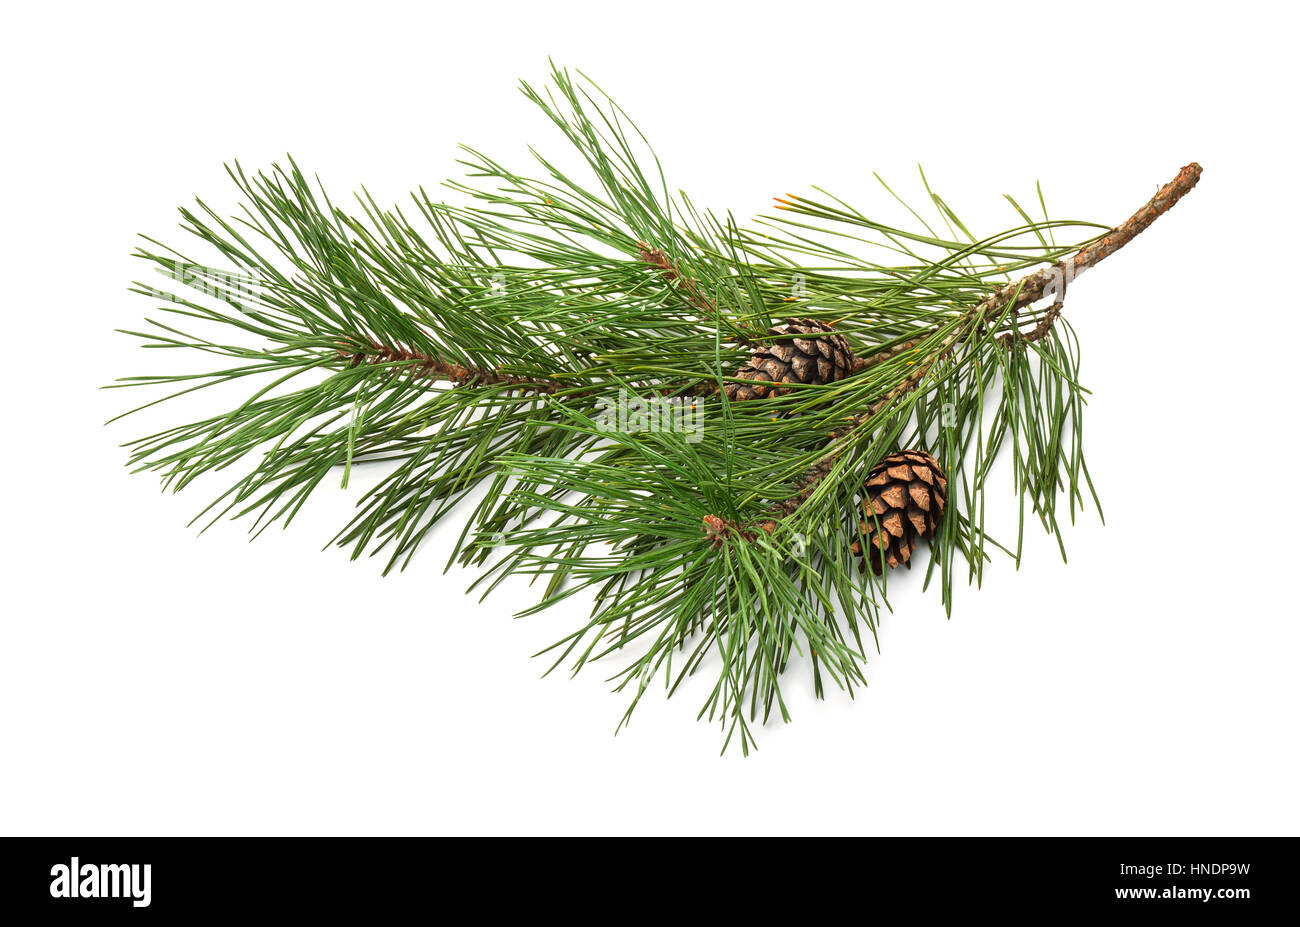 Pine tree branch and cones isolated on white - Stock Image